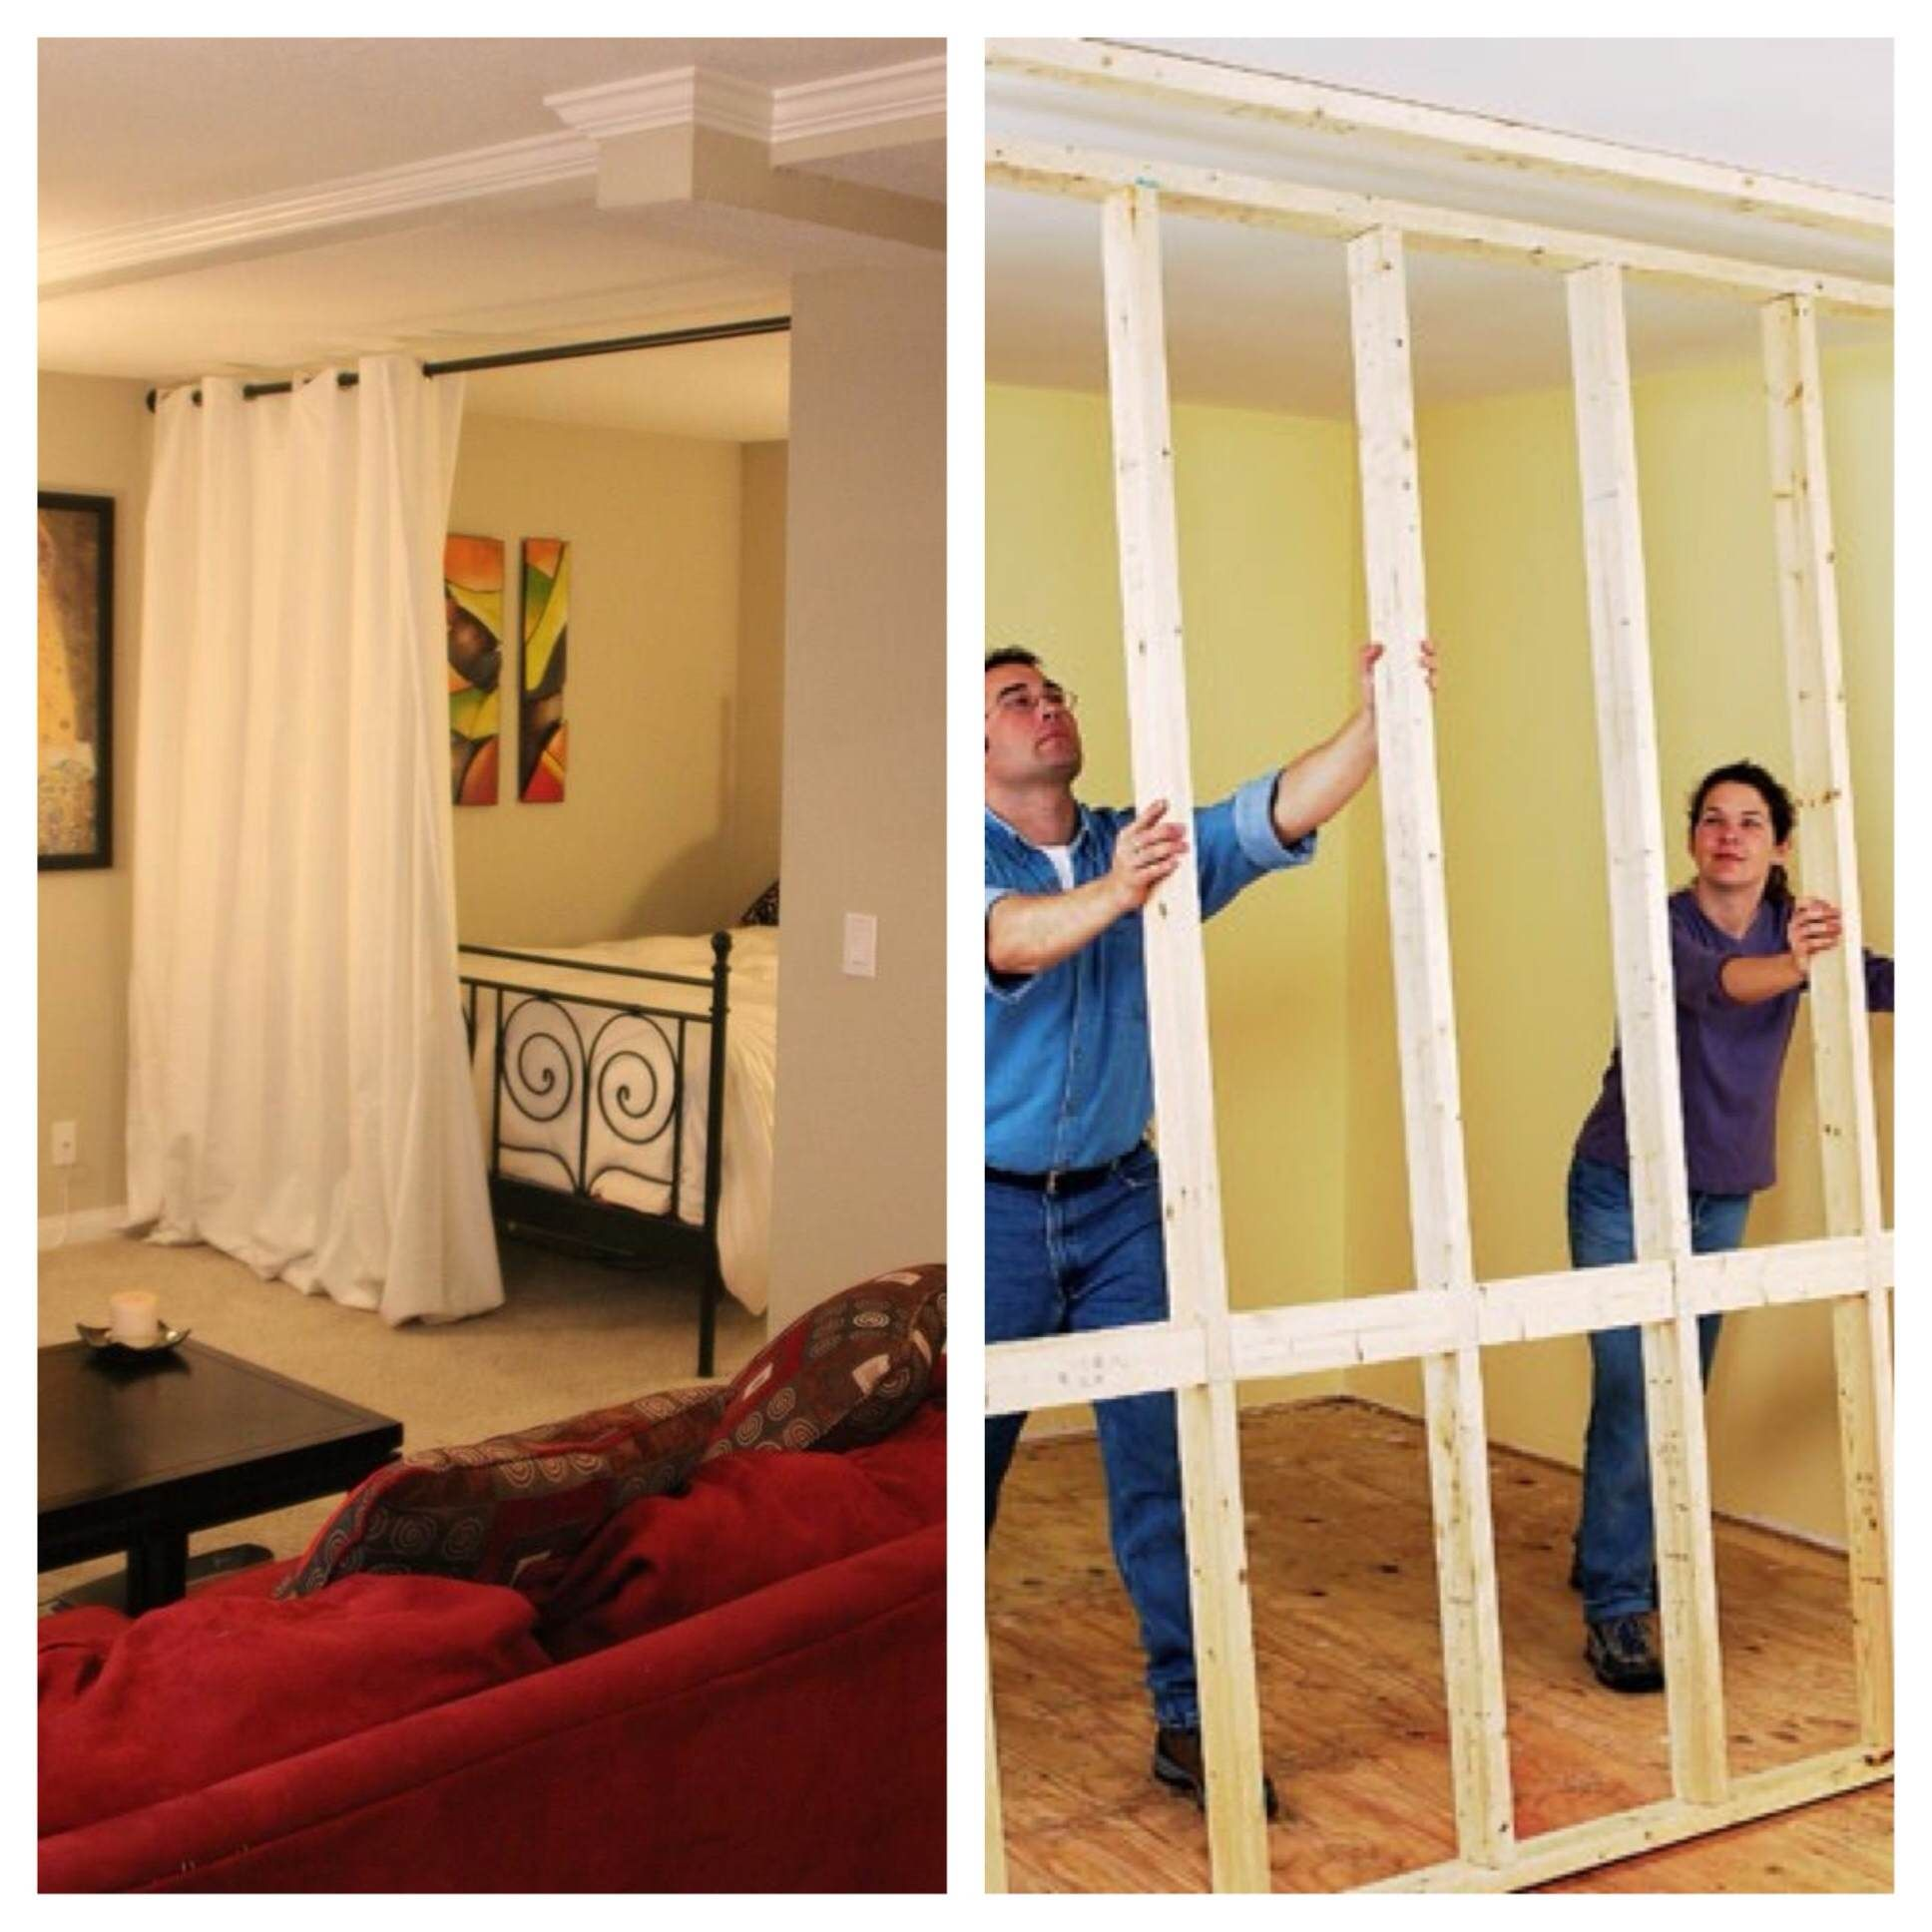 Install a room divider kit or build an expensive wall when figuring